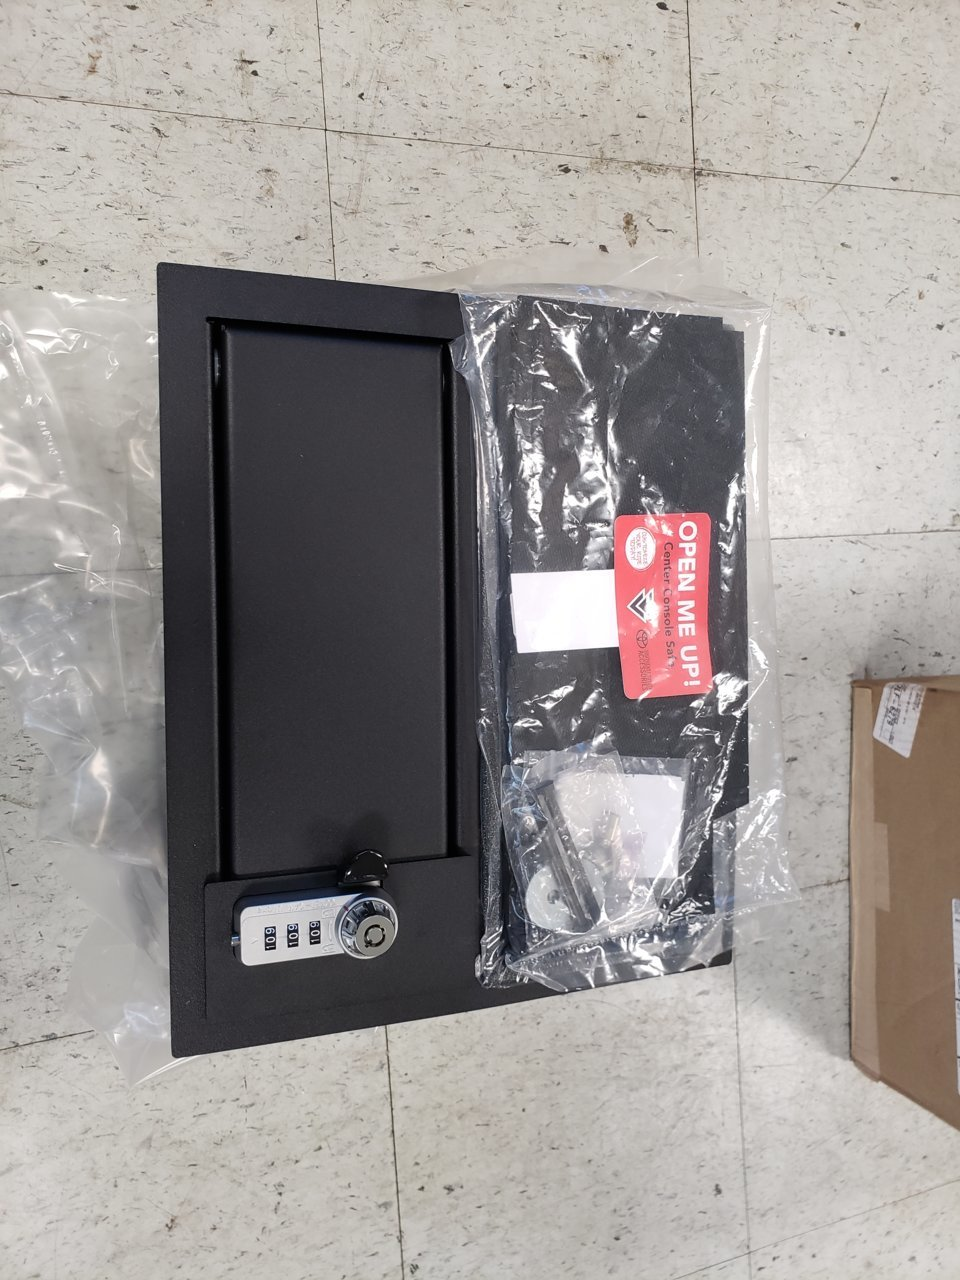 Duraliner Bed Liner >> 14-18 TUNDRA GUN SAFE FOR CENTER CONSOLE 00016-34174 $220 ...